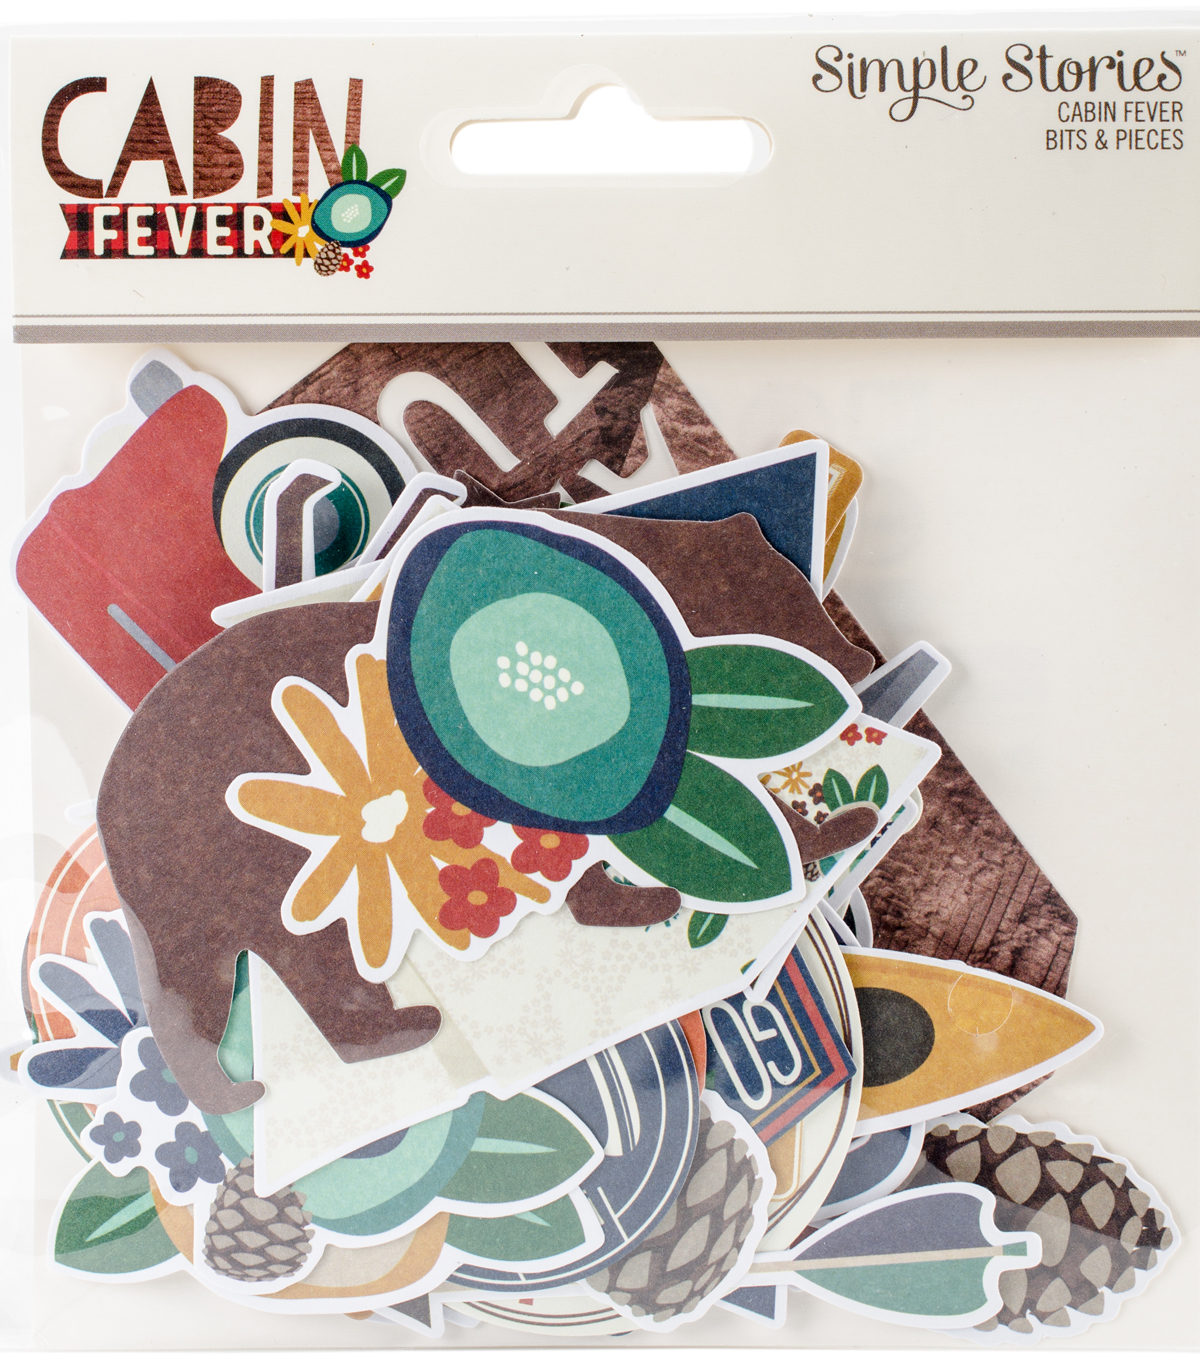 Cabin Fever Bits & Pieces Die-Cuts